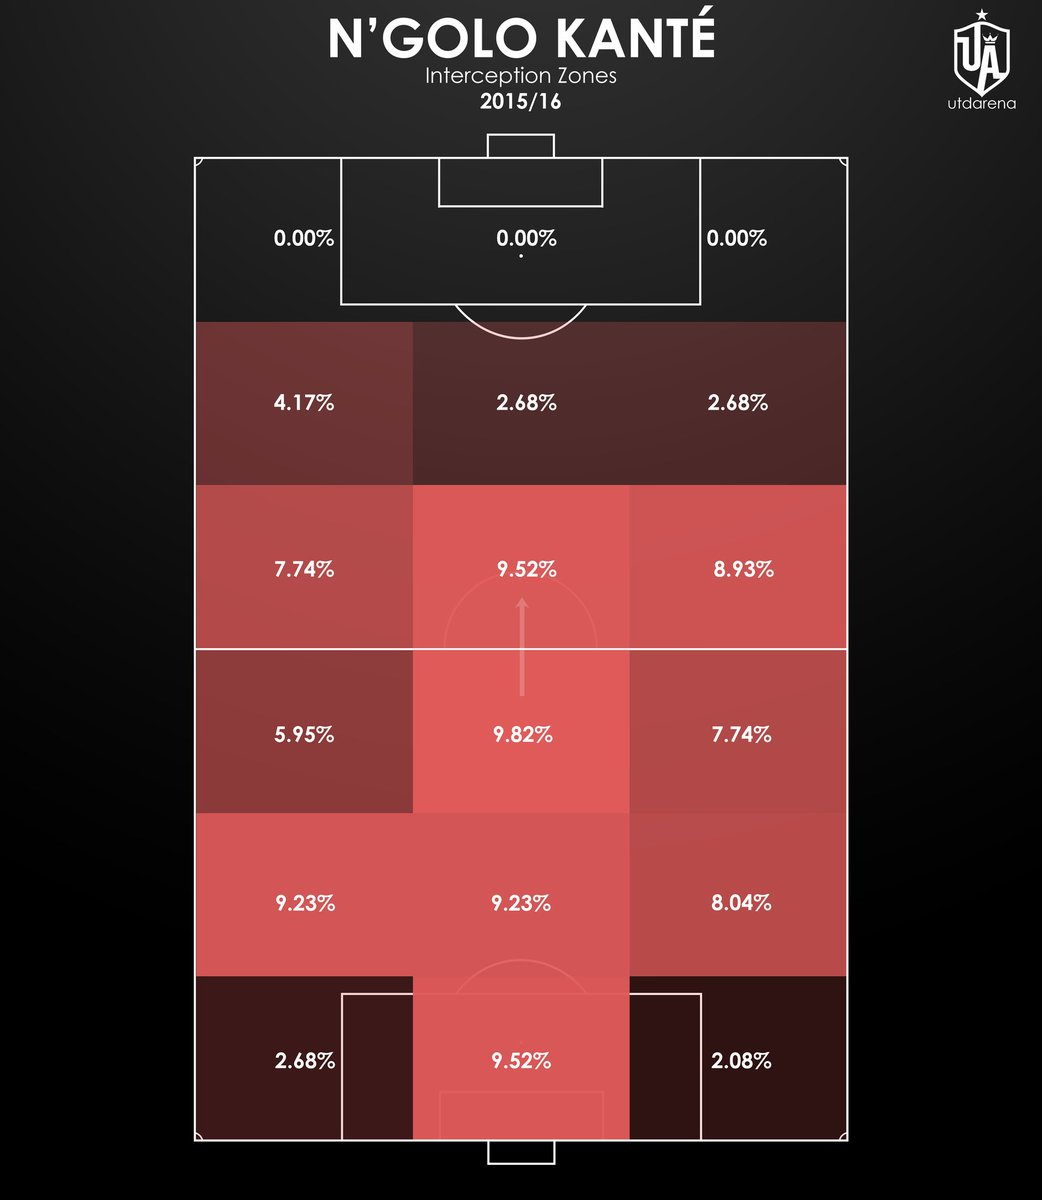 N'Golo Kanté Interception Zones: 2015/16  After correcting errors this looks even more impressive. The share of possessions in the box and then all over midfield from his own defensive zones to the opposition zones is incredible.  One of the most impactful defensive players. https://t.co/w5LAUlVSzd